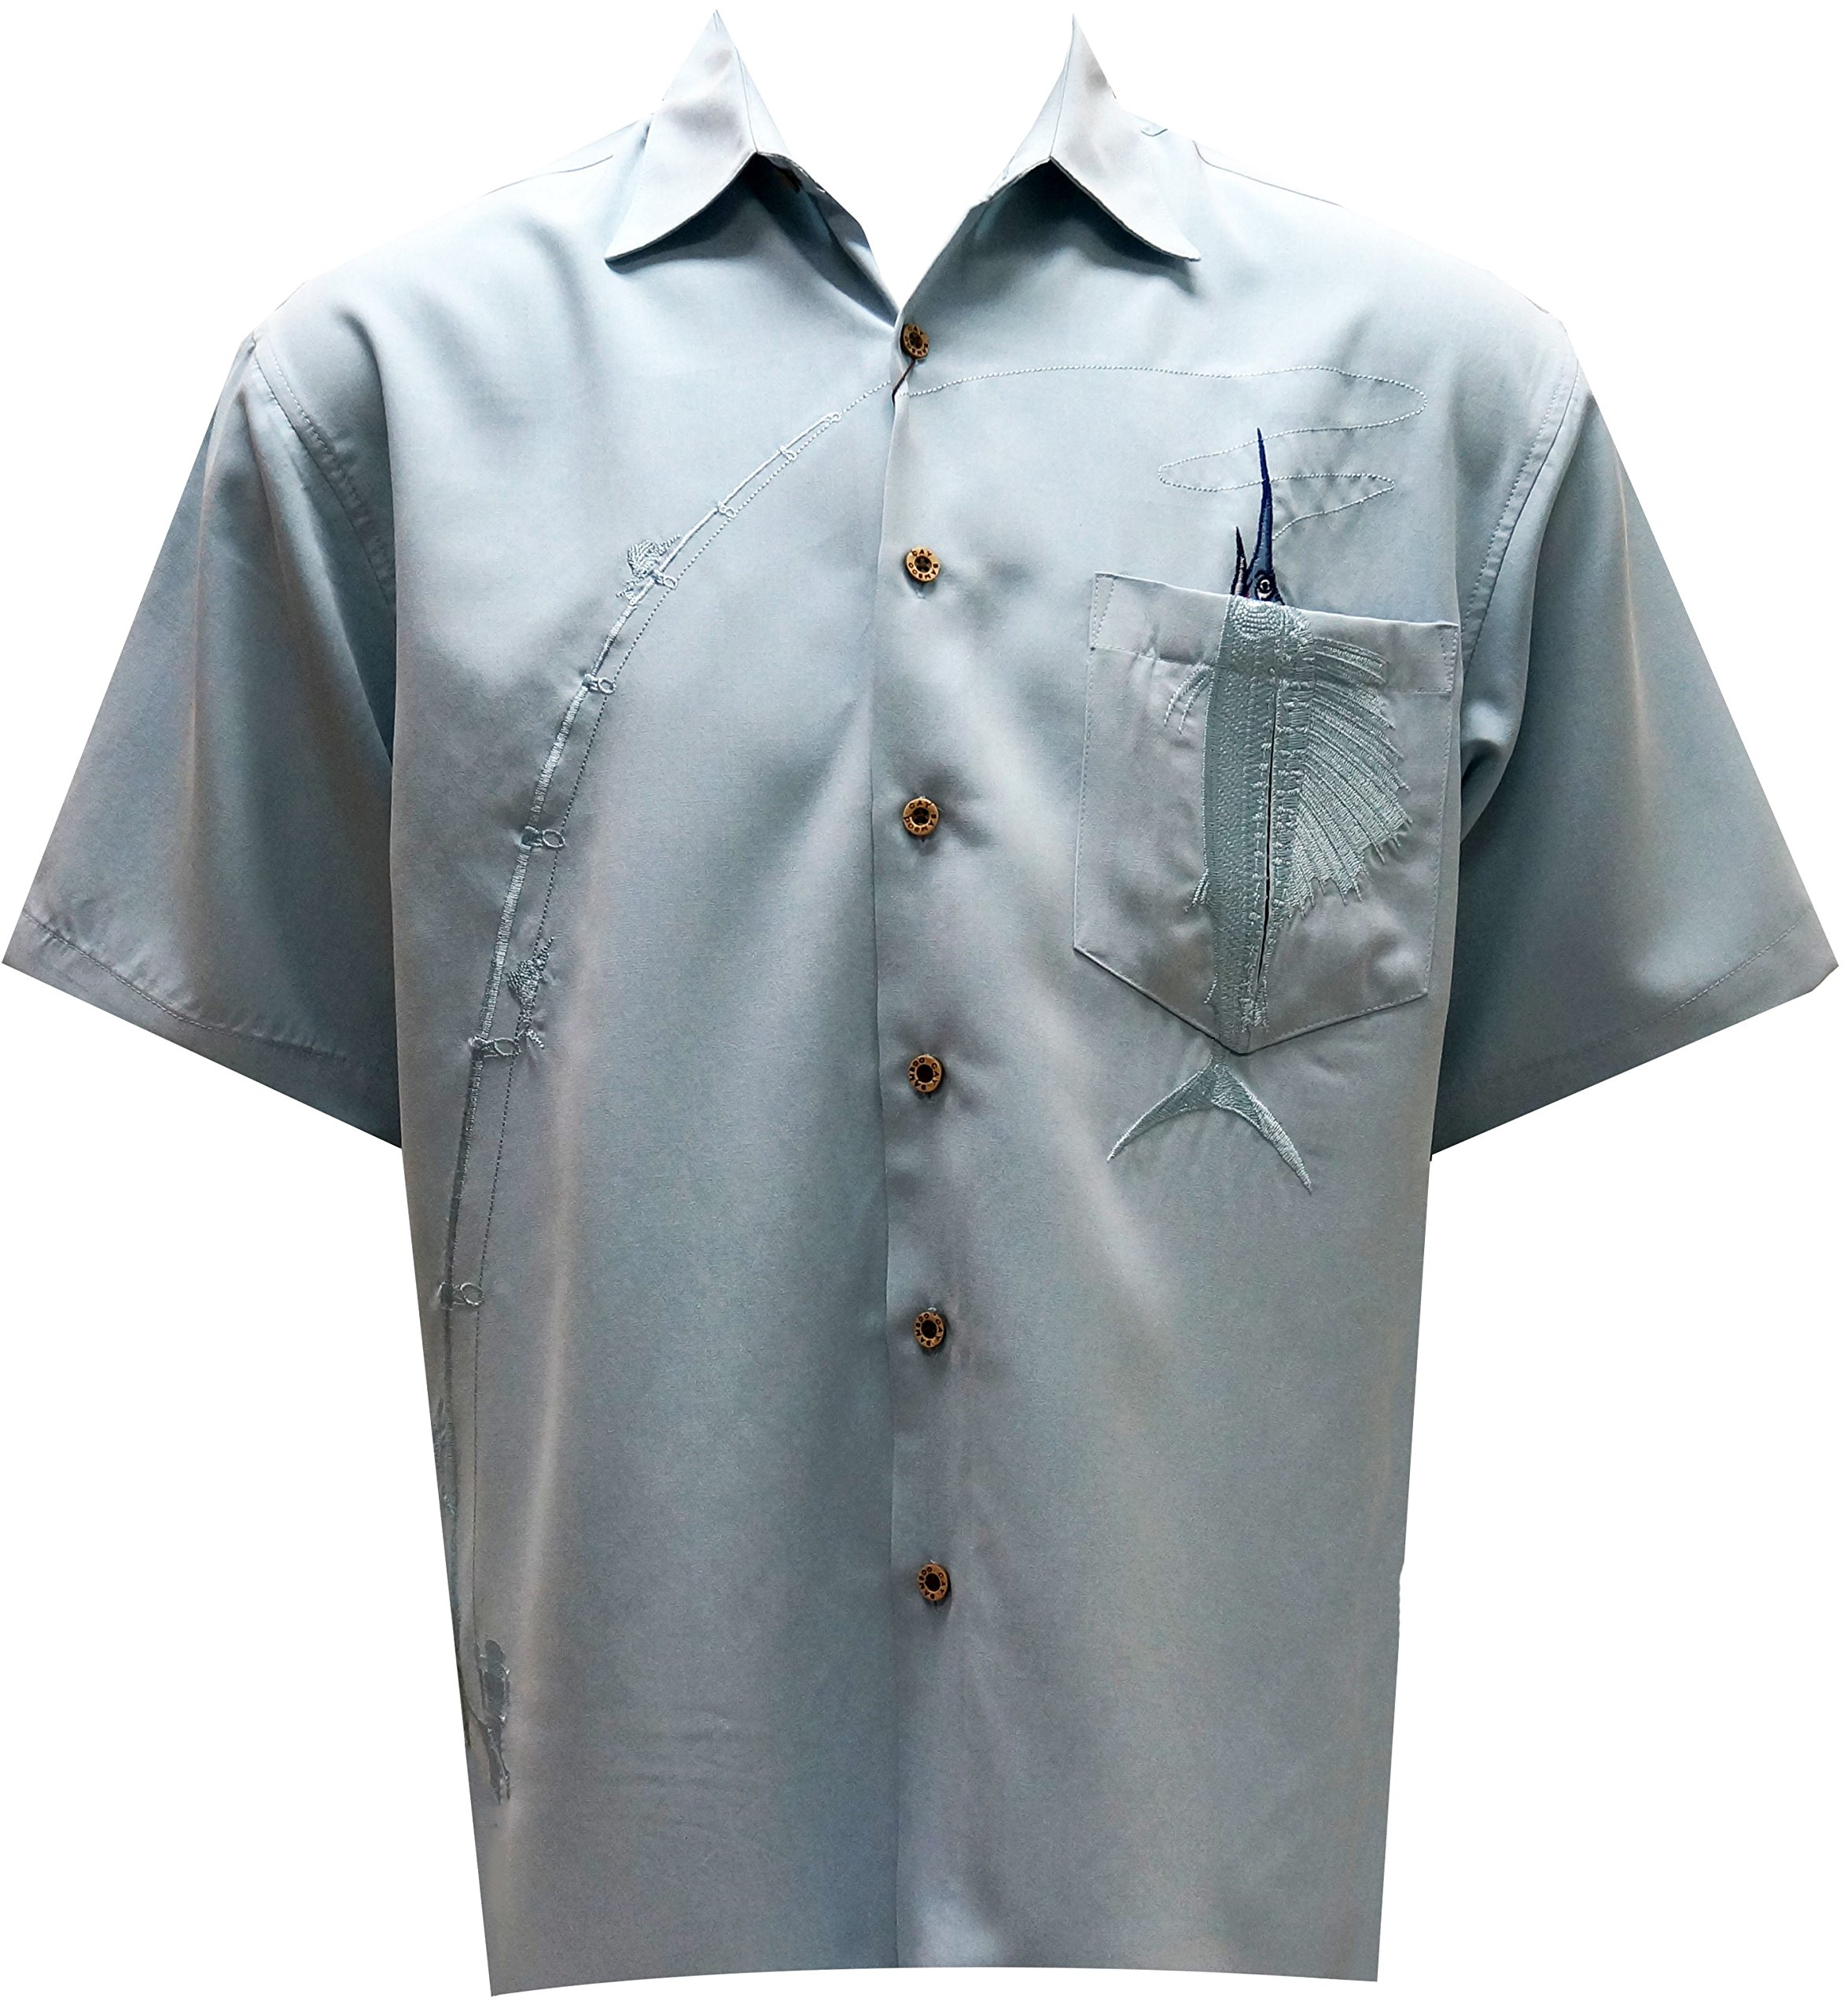 Bamboo Cay Shake The Hook, Men's Tropical Style, Embroidered Button Front Blue Shirt (X-Large)